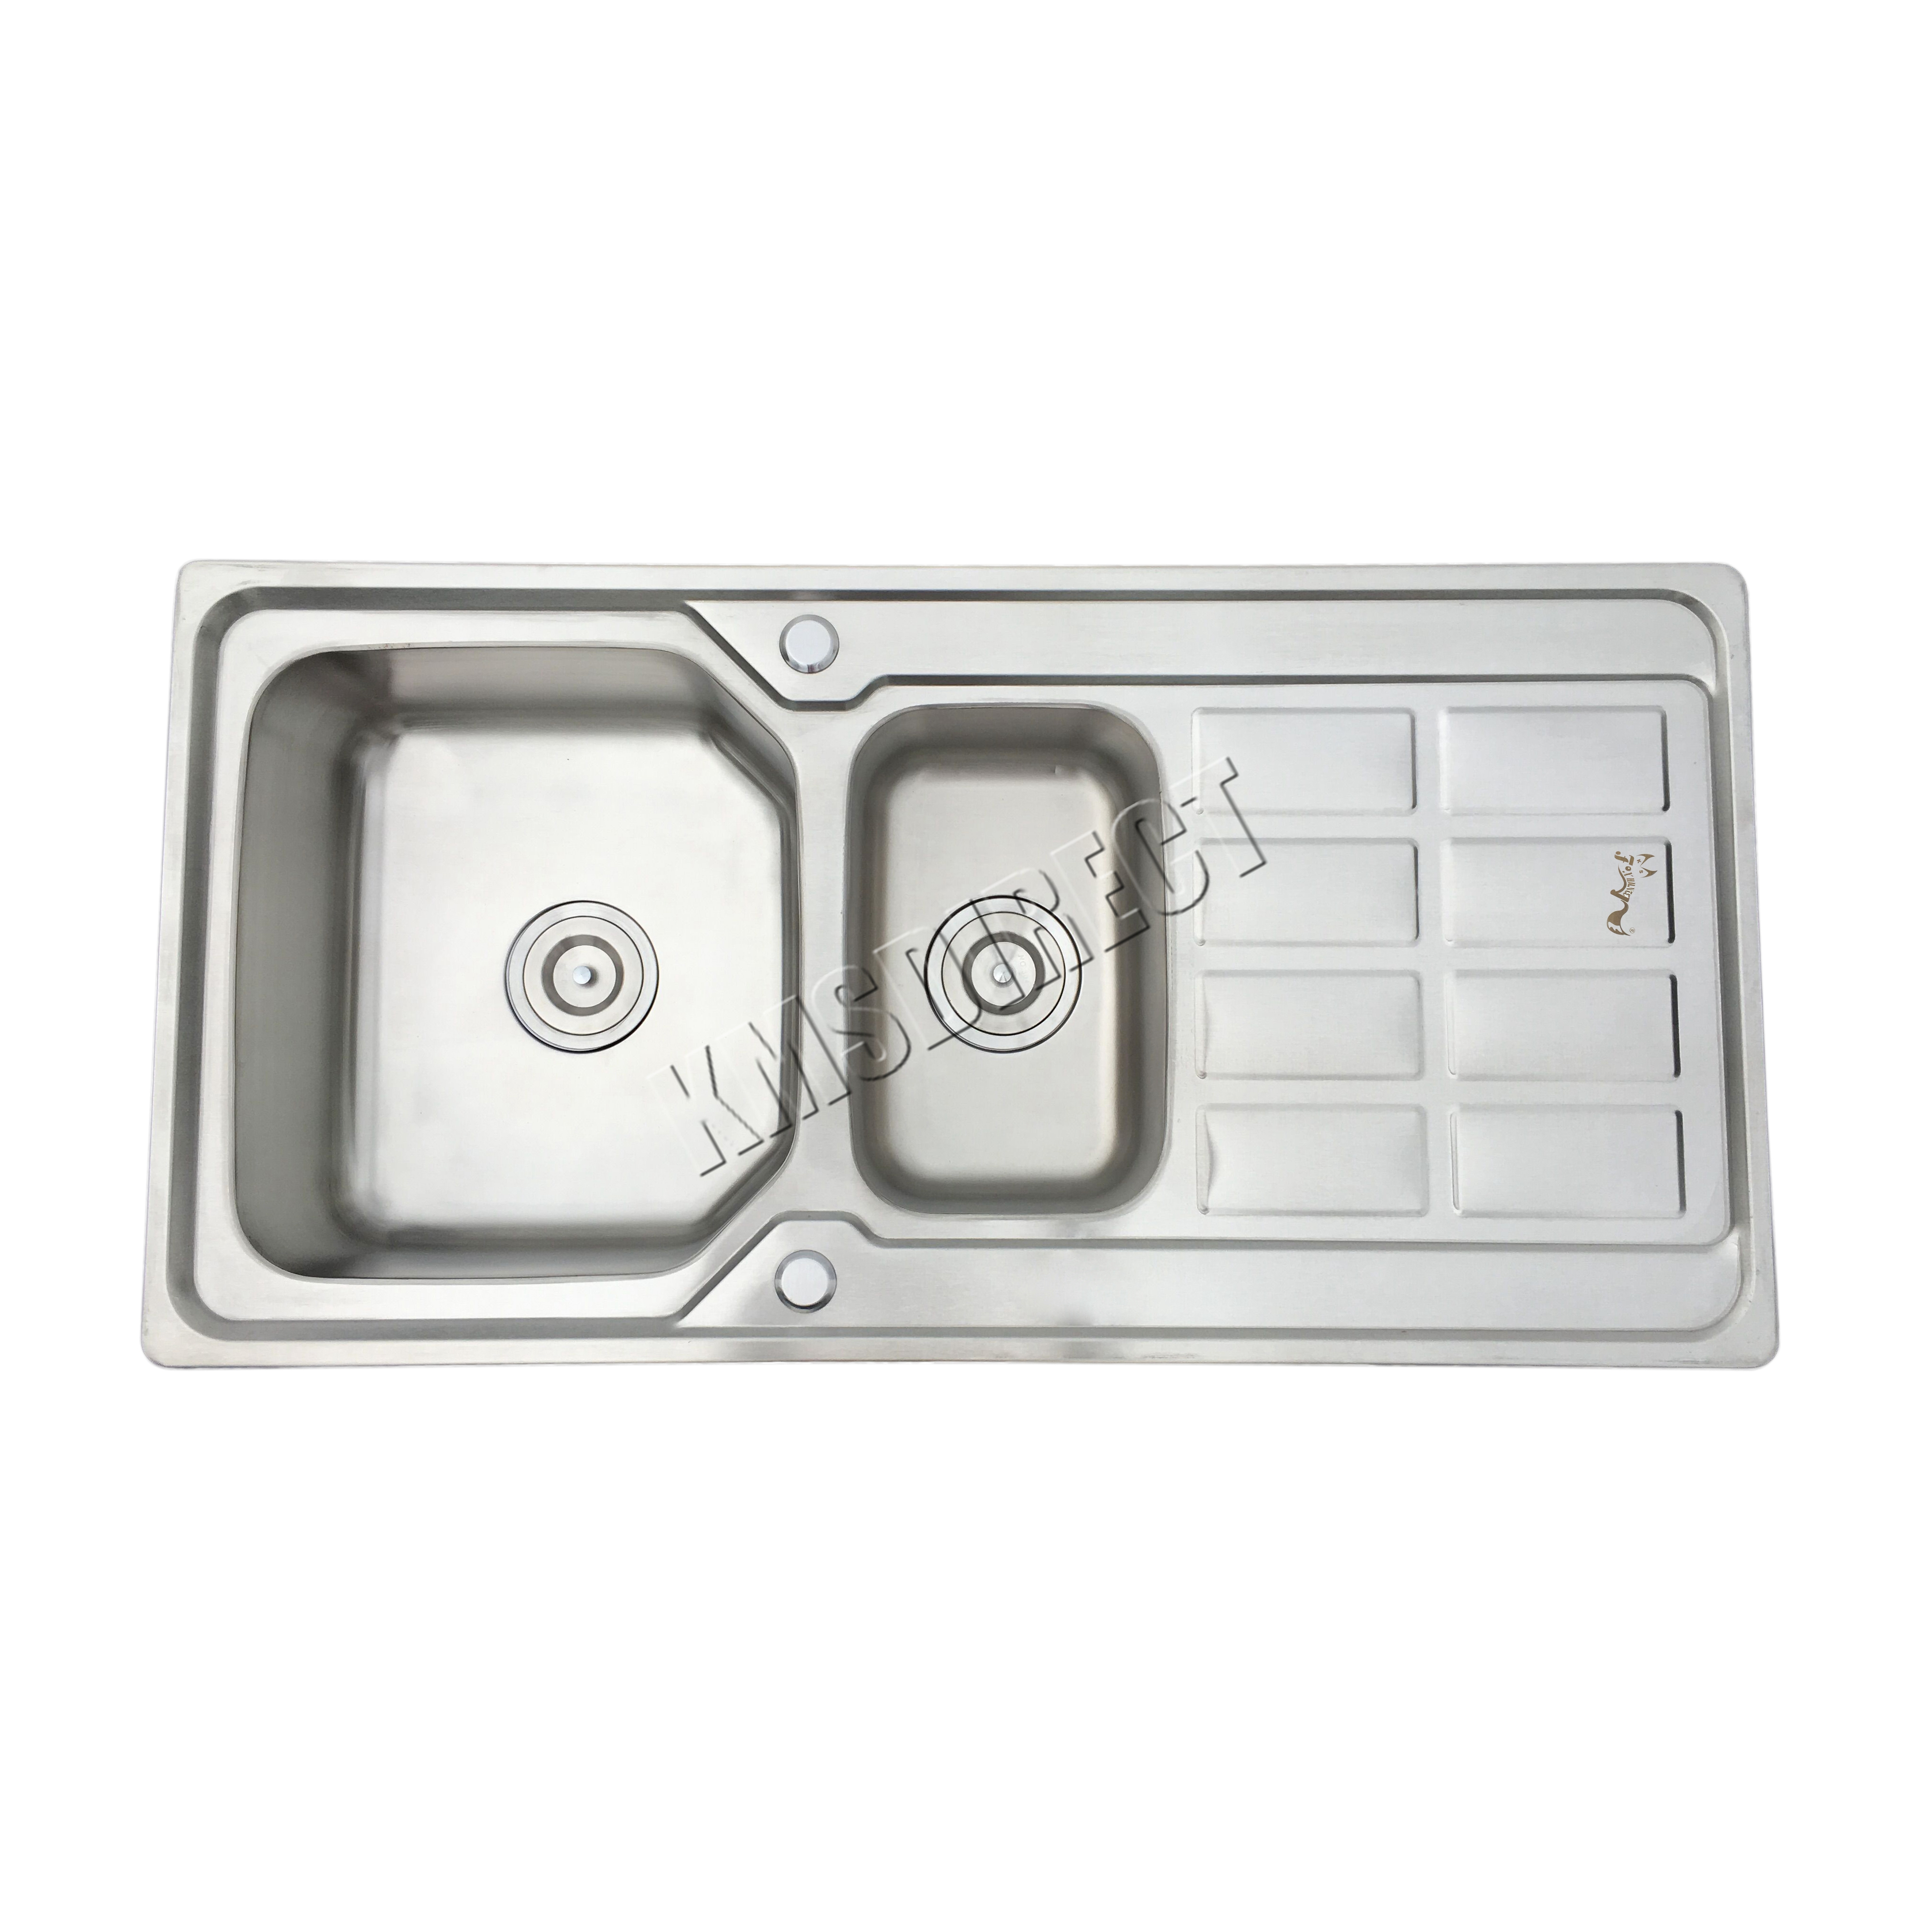 foxhunter double 1.5 bowl stainless steel kitchen sink complete